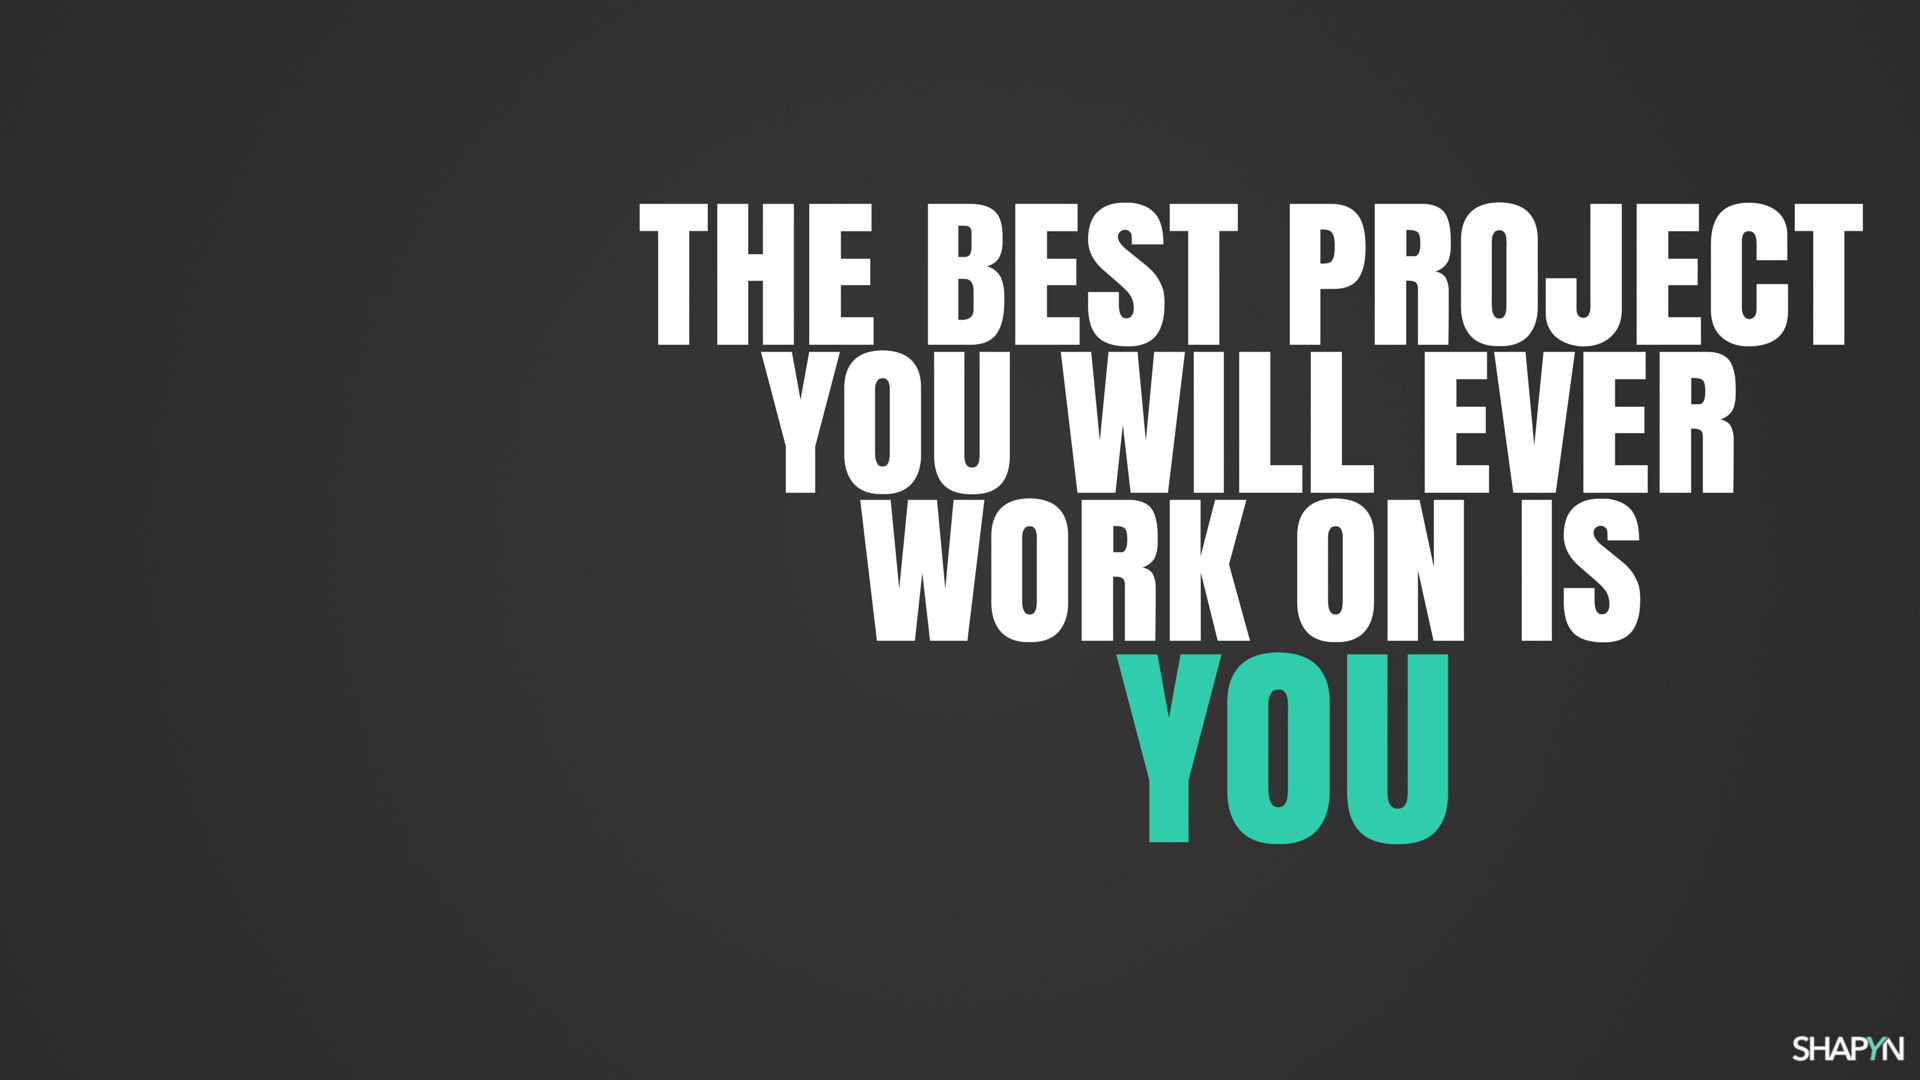 Motivational Workout Wallpapers With Quotes Fitness Motivation Iphone Wallpaper 71 Images